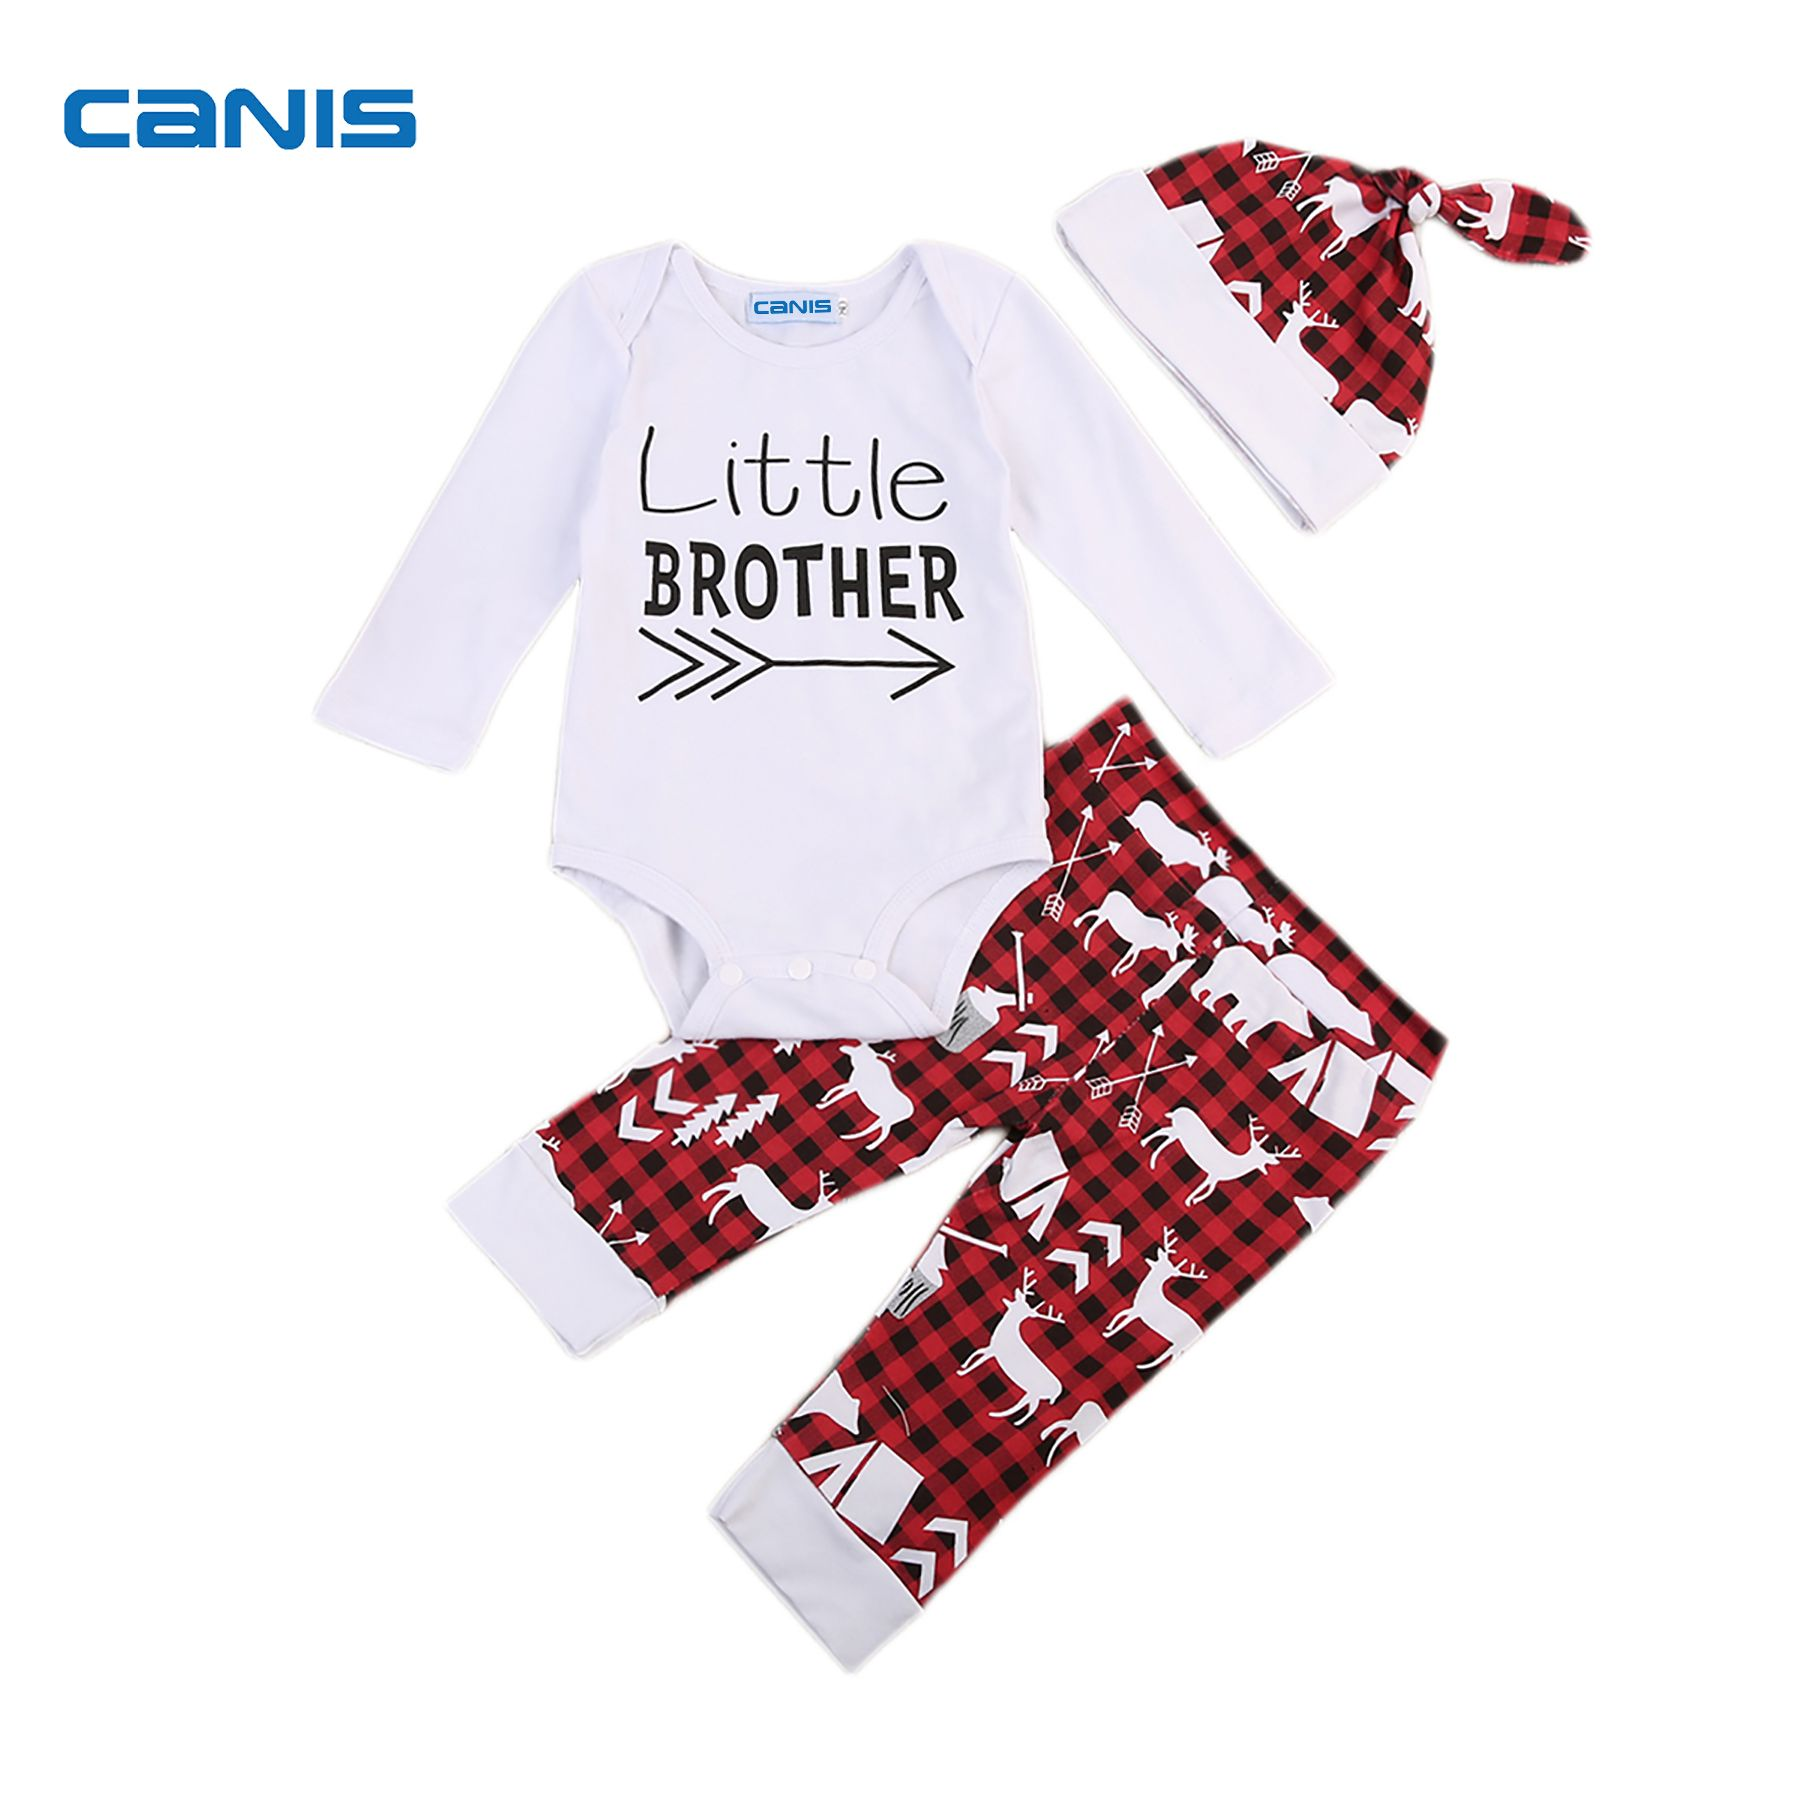 3PCS Newborn Kid Baby Boy Outfit Clothes Romper Pants Little Brother Costumes